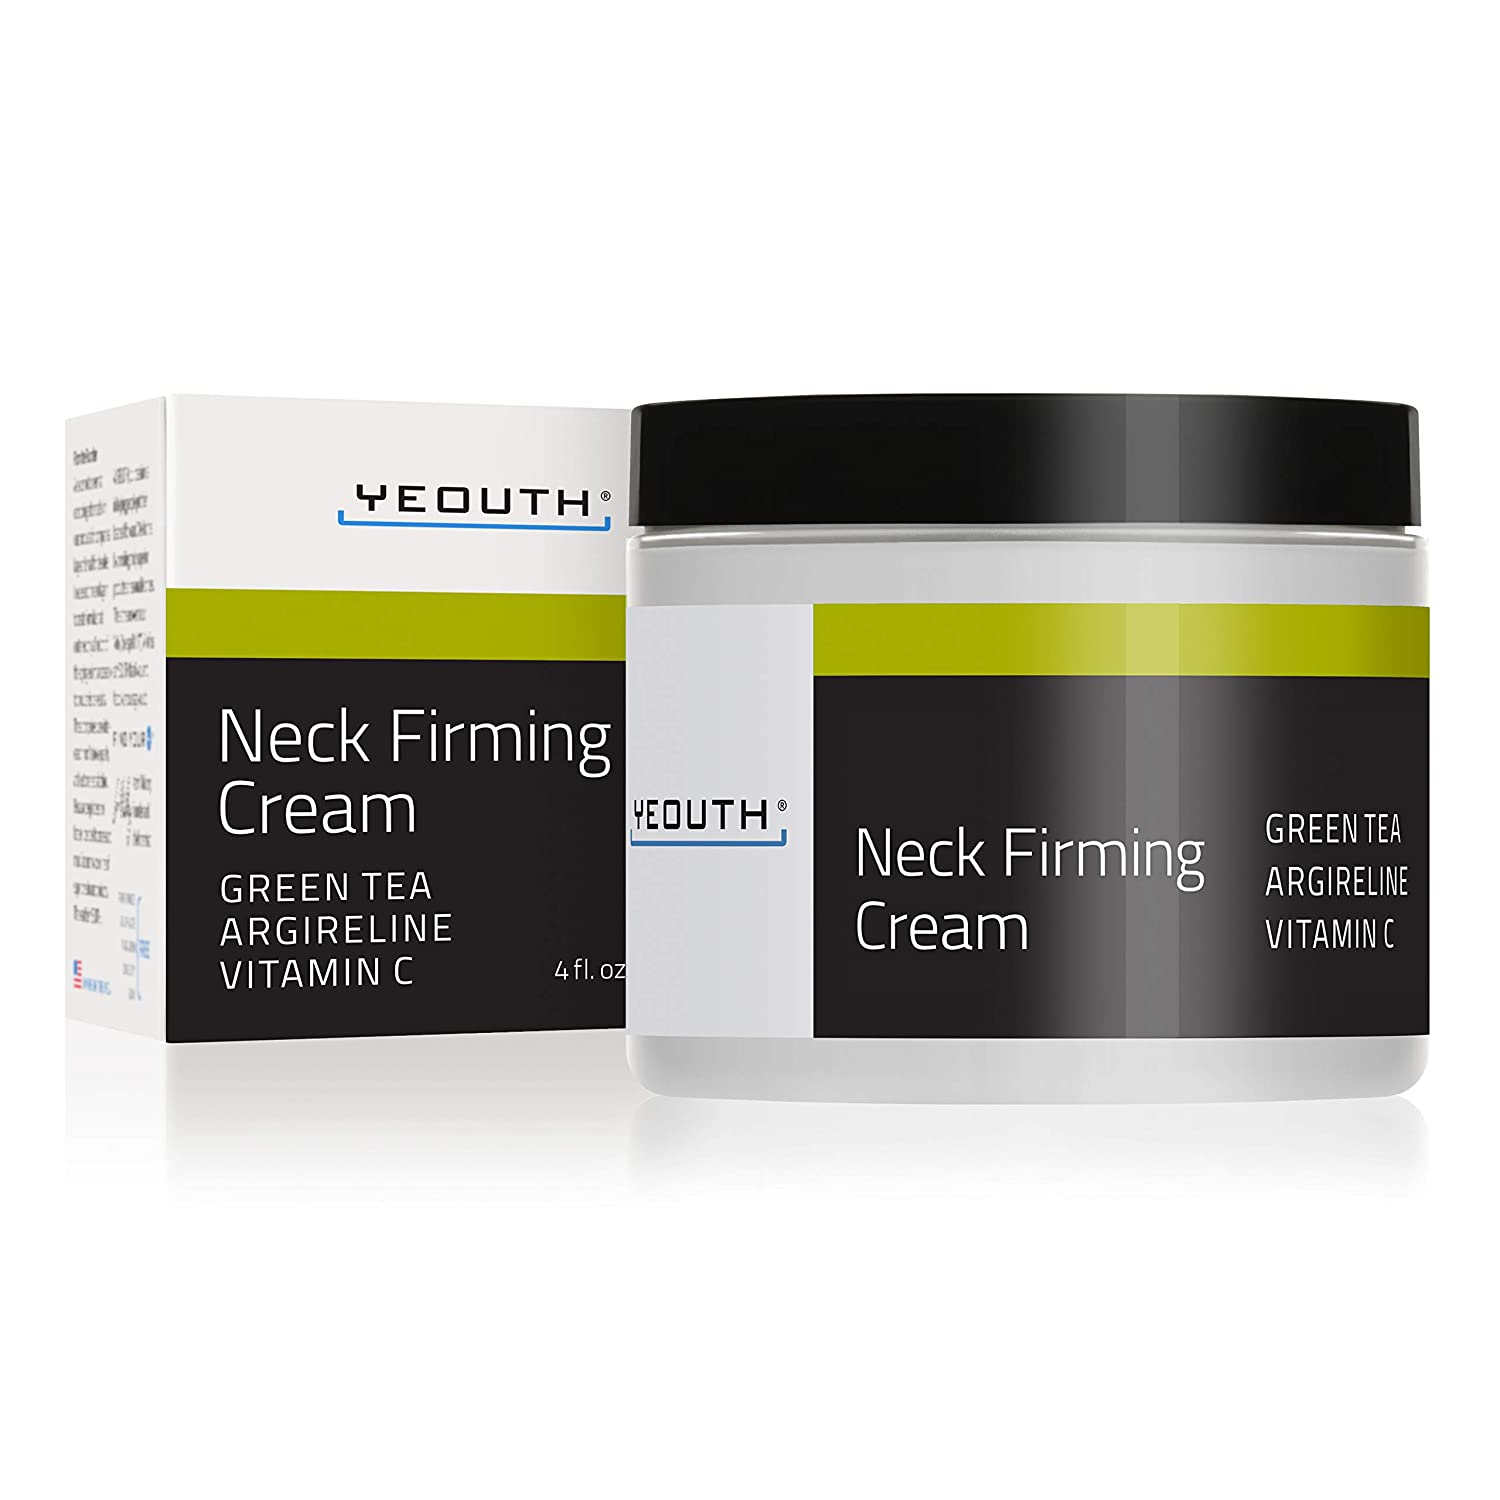 YEOUTH Neck Cream for Firming, Anti Aging Wrinkle Cream Moisturizer, Skin Tightening, Helps Double Chin, Turkey Neck Tightener, Repair Crepe Skin with Green Tea, Argireline, Vitamin C - 2oz (4oz)